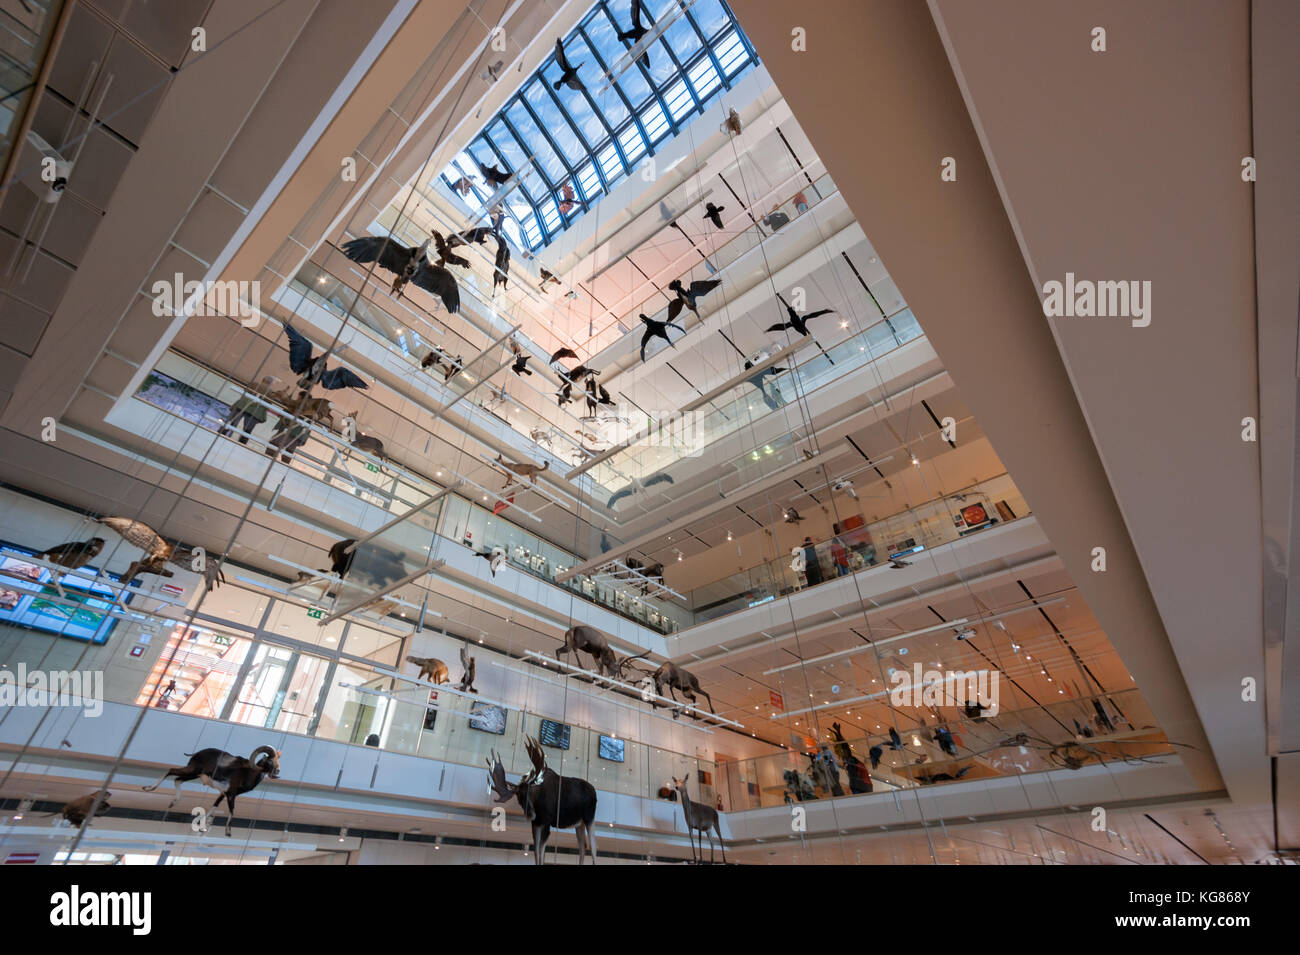 Birds models suspended into the Grand Hall of the MUSE Science Museum in Trento, Italy, designed in 2013 by Renzo Stock Photo